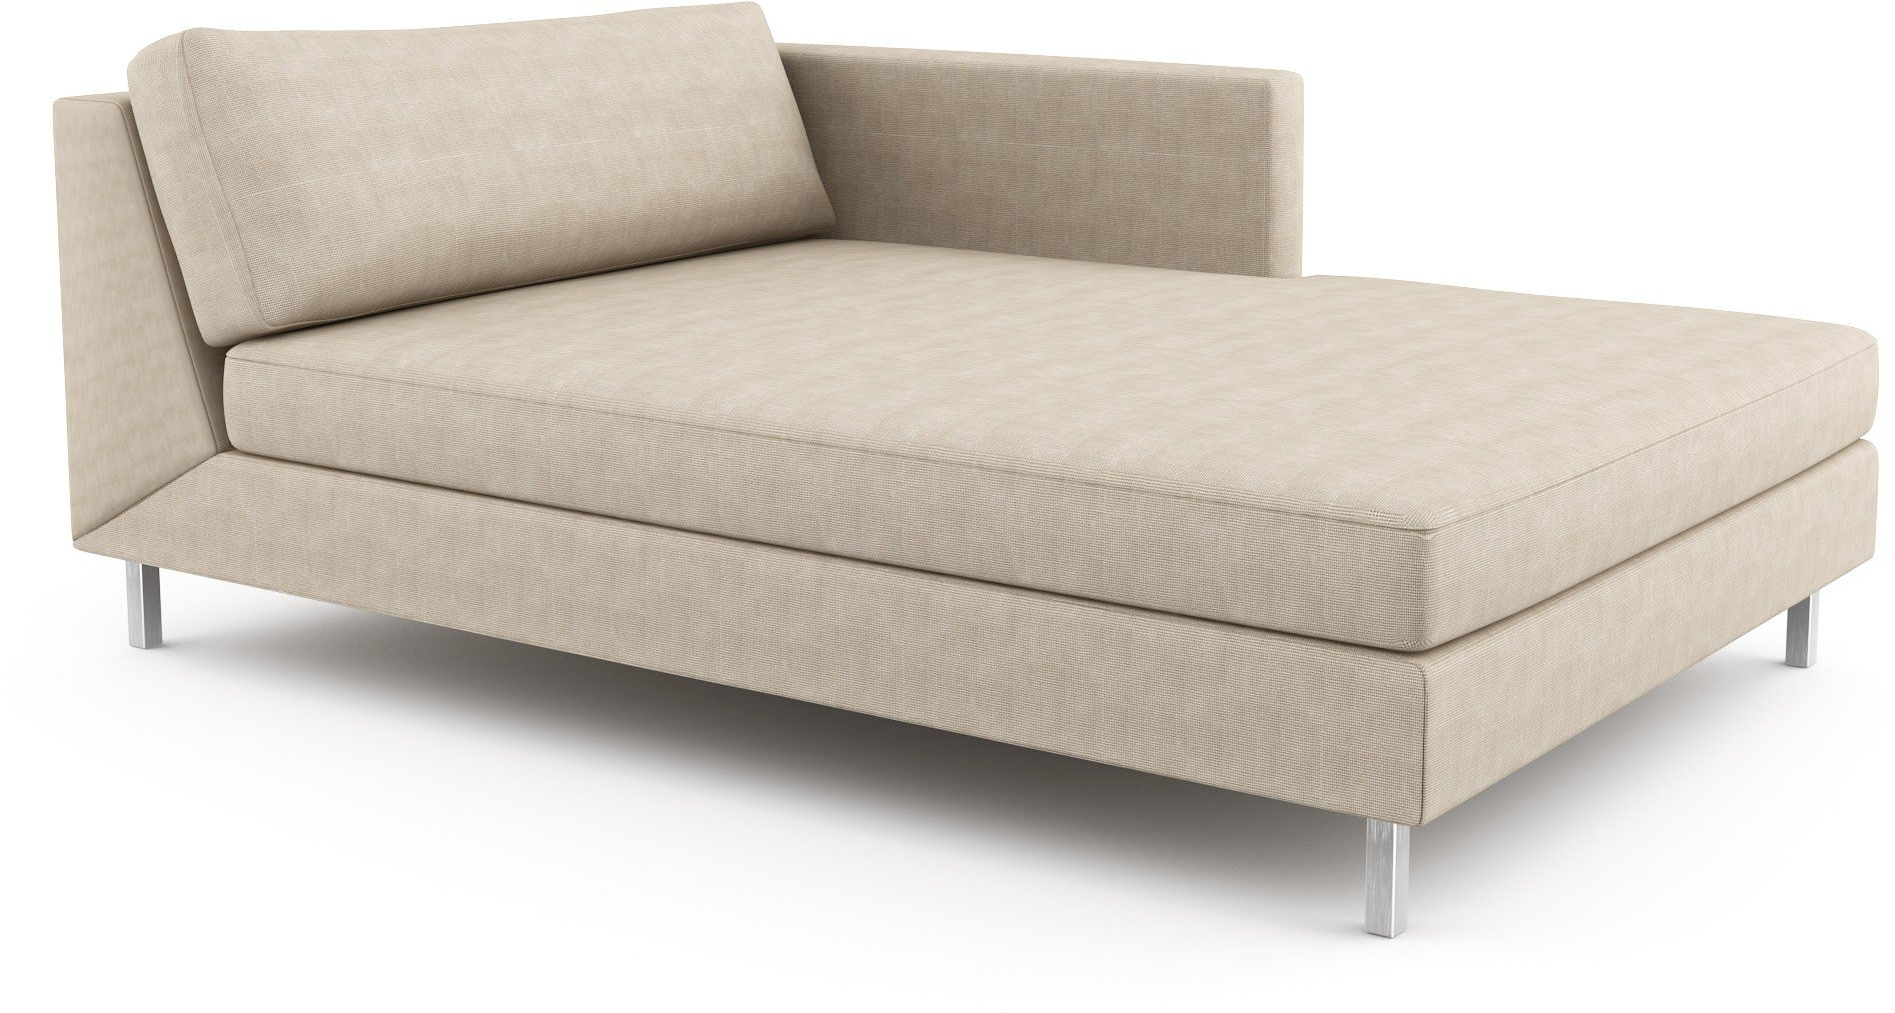 #Viesso                   #sofa                     #Modern #Sofa #Sectional, #Mota #Double #Chaise #Right #(Custom) #Viesso      Modern Sofa Sectional, Mota Double Chaise Right (Custom) | Viesso                                       http://www.seapai.com/product.aspx?PID=1021892